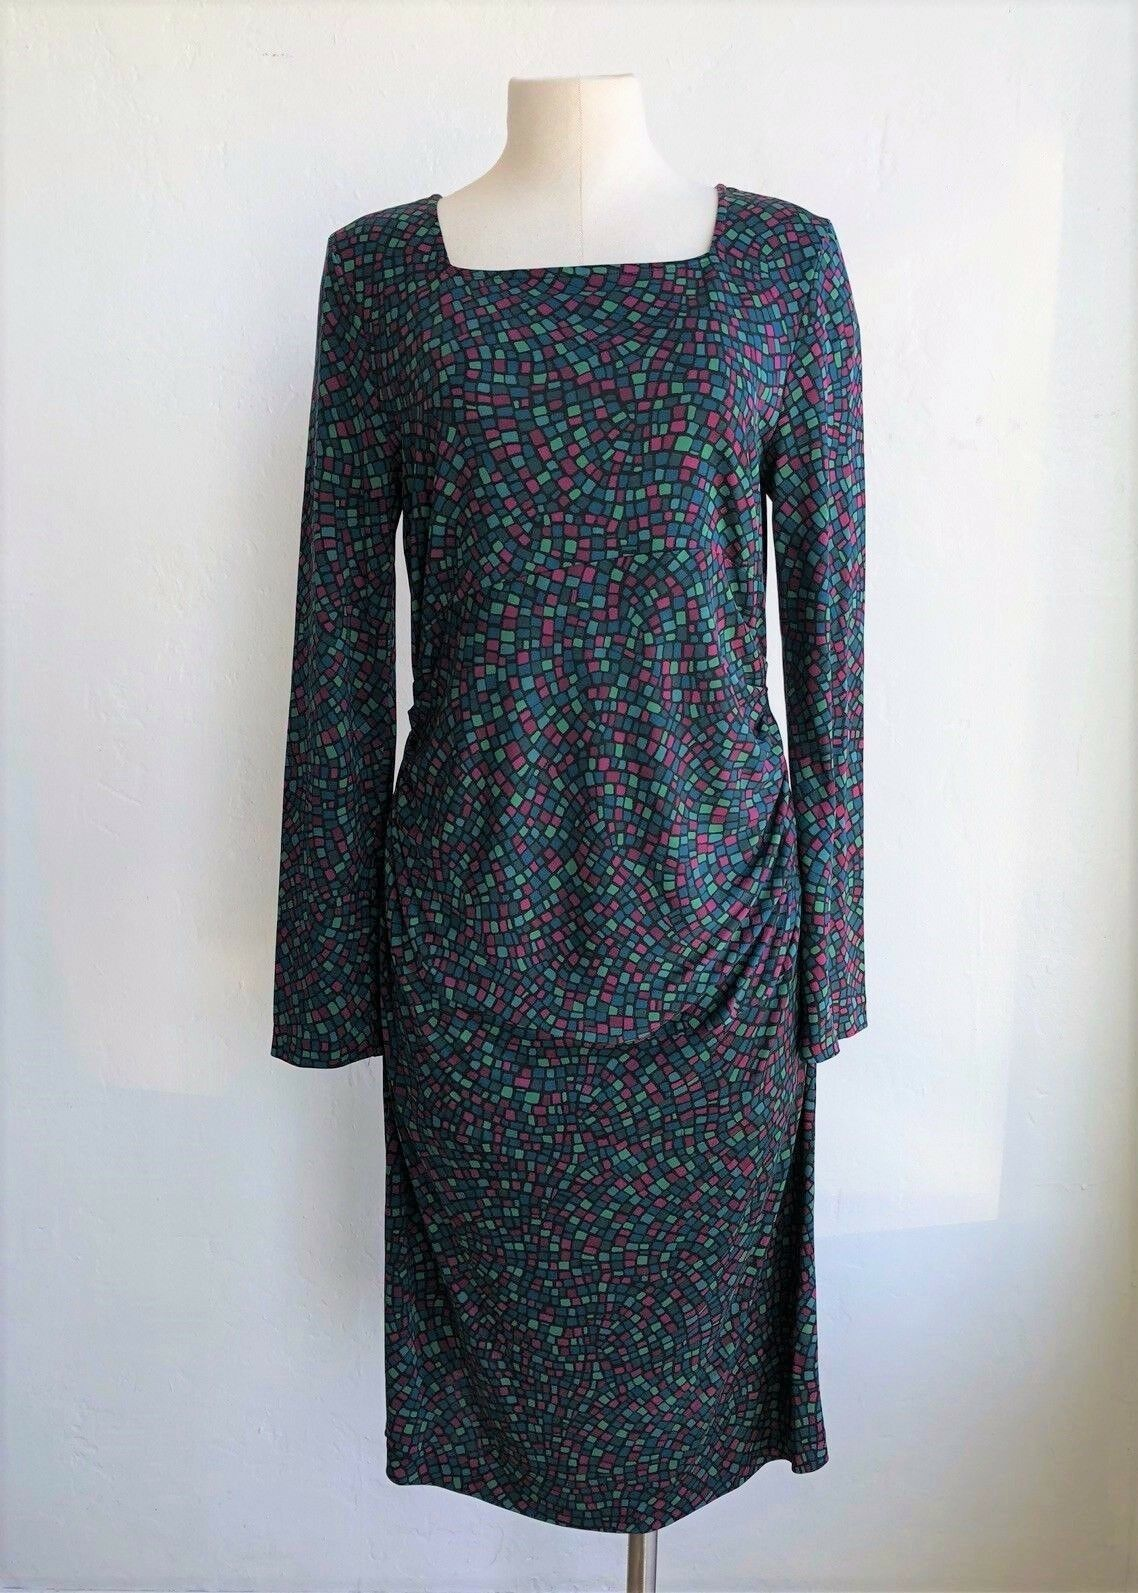 DIANE VON FURSTENBERG Silk Silk Silk Teal Green Mid-Length Dress Medium  498 c3432b